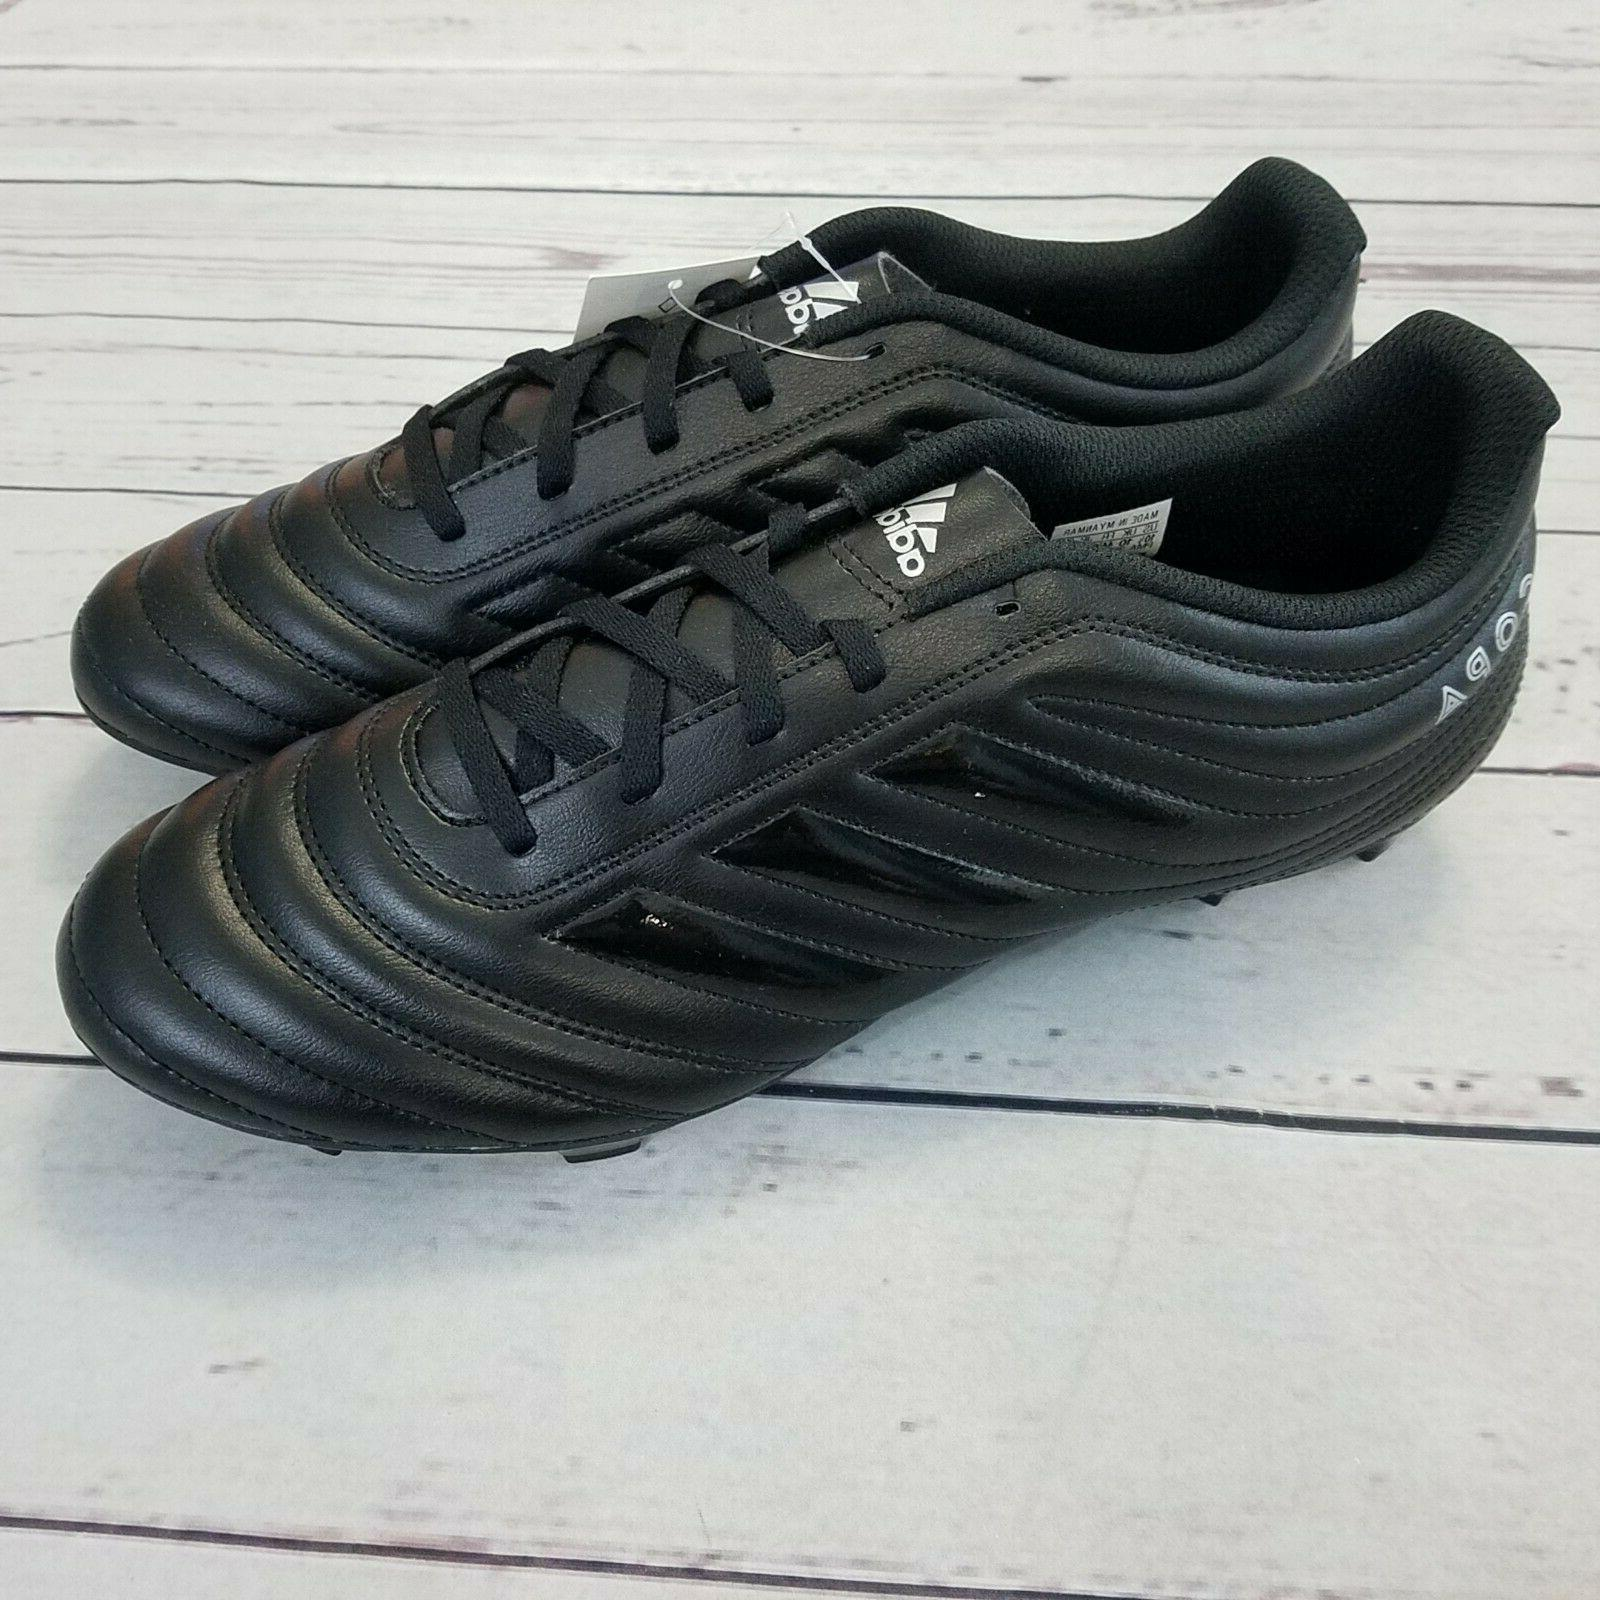 Adidas Copa FG Firm Soccer Cleats Size 10.5